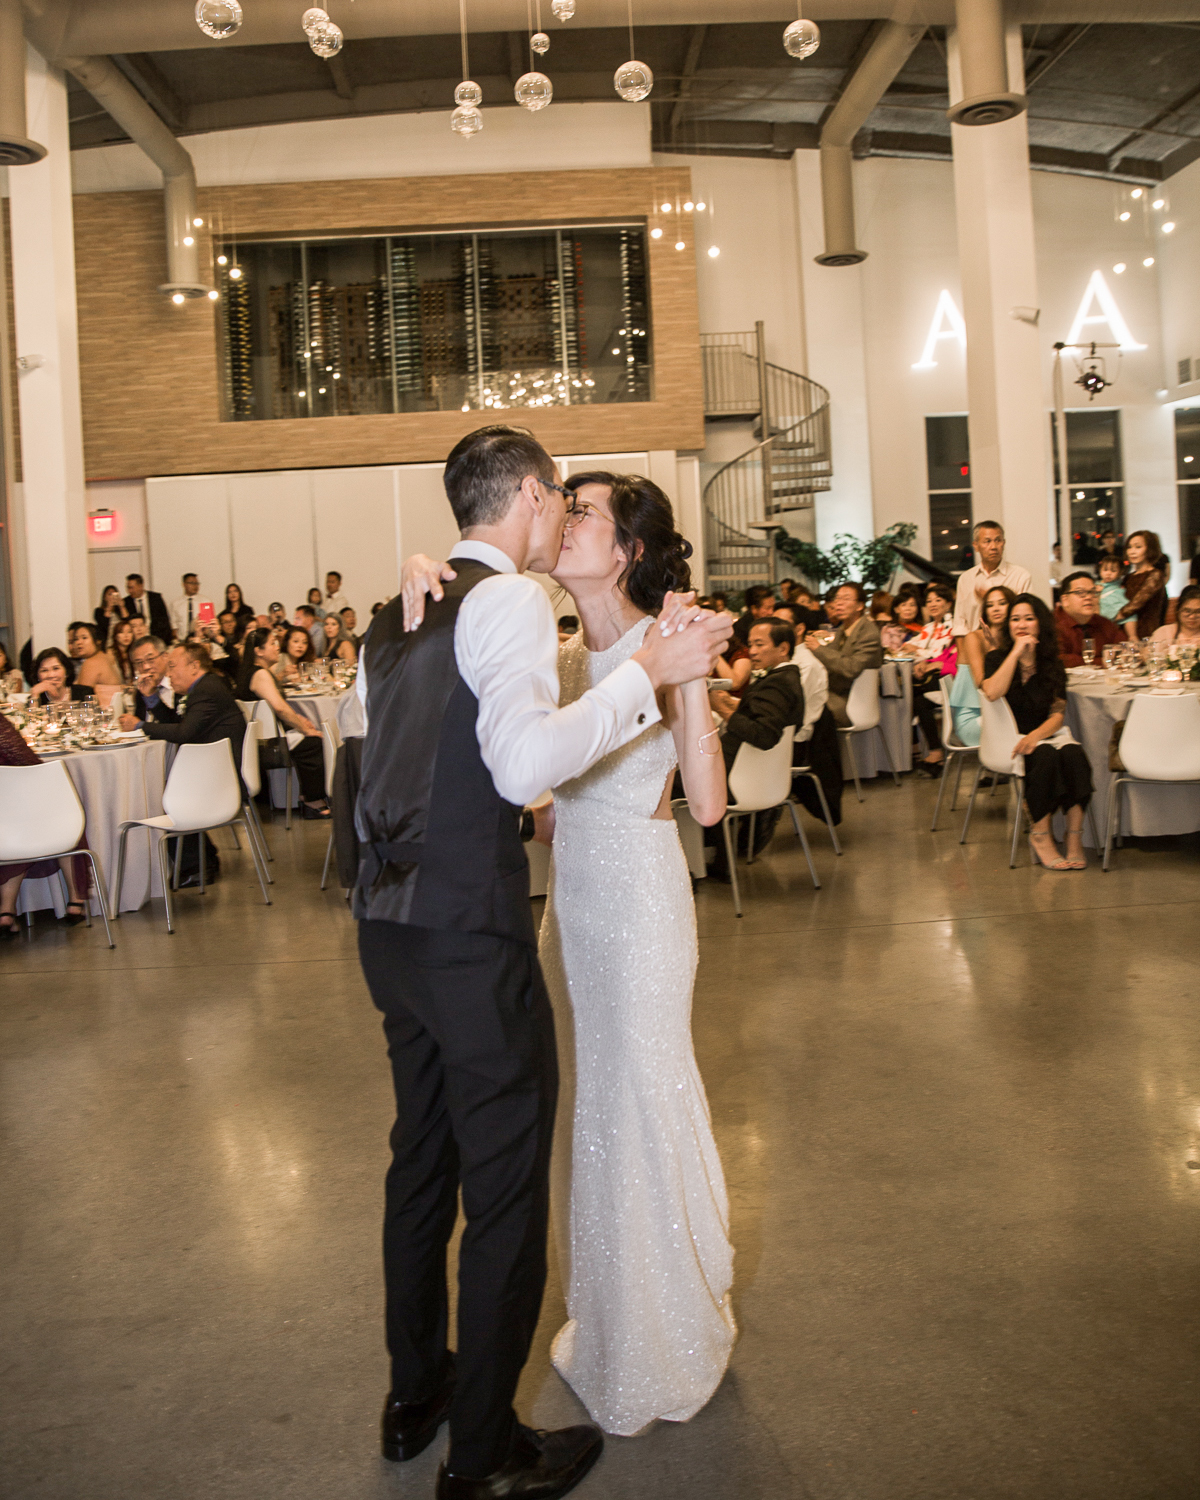 wedding couple first dance indoors around guests